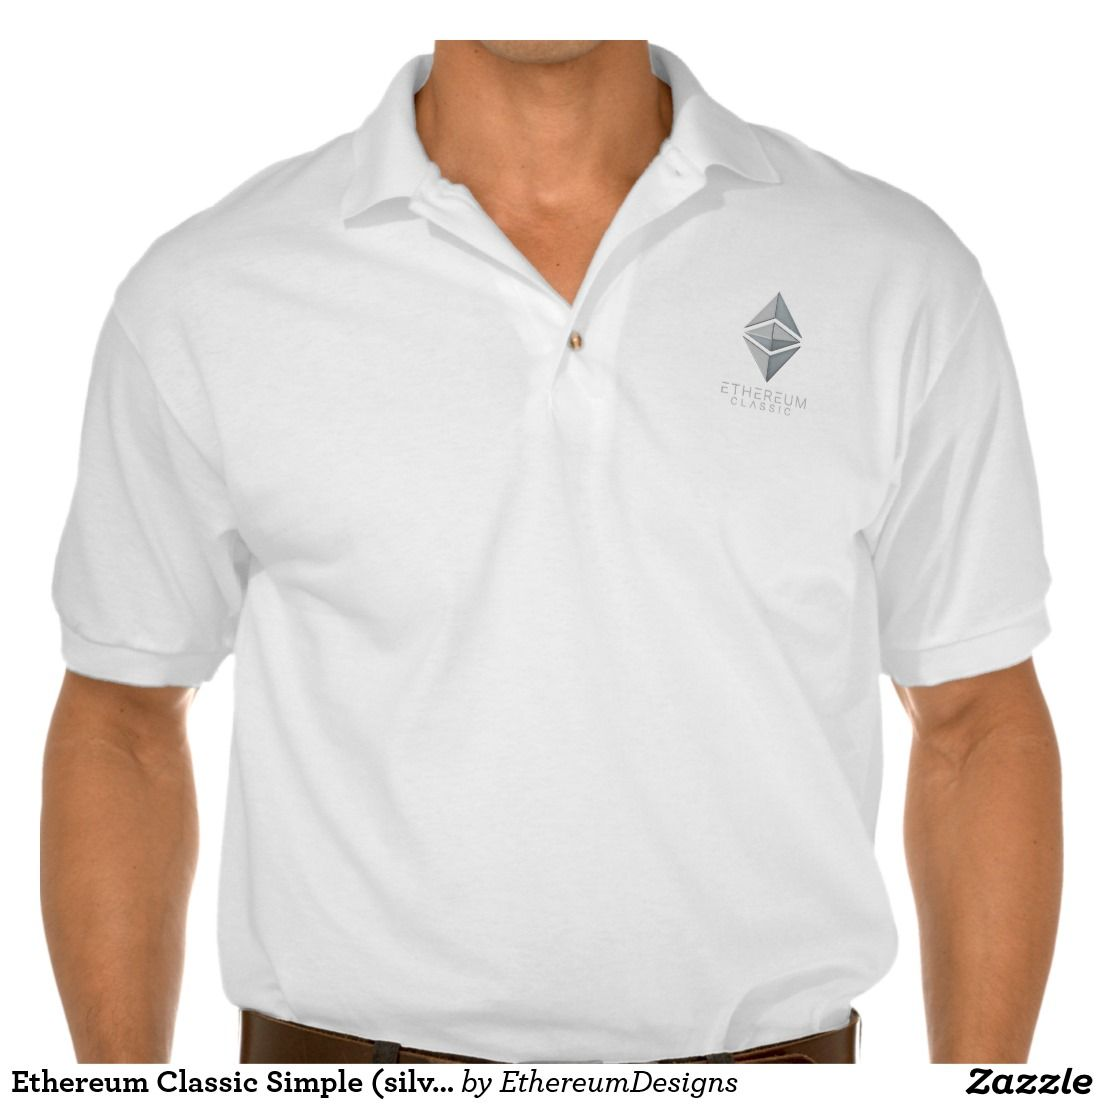 Ethereum Classic Simple (silver) Polo Shirt on Zazzle. Designed by Andras Balogh | http://andras.design